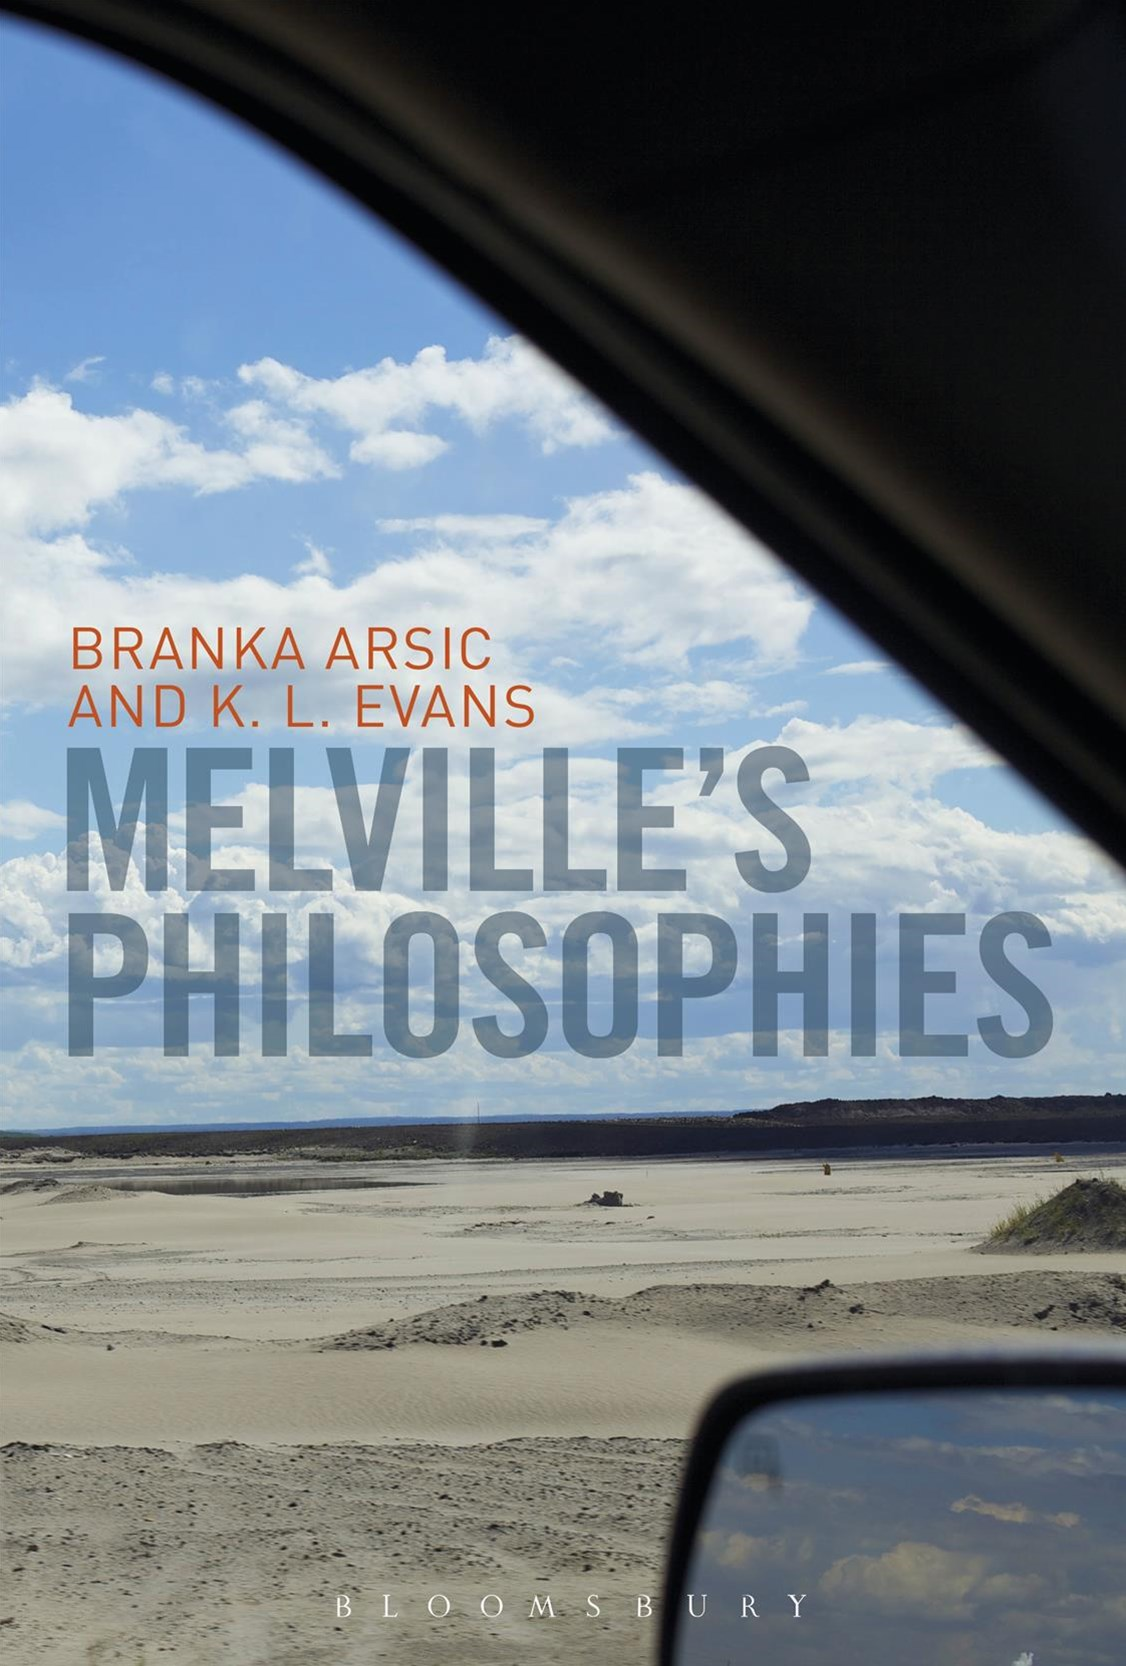 Melville's Philosophies